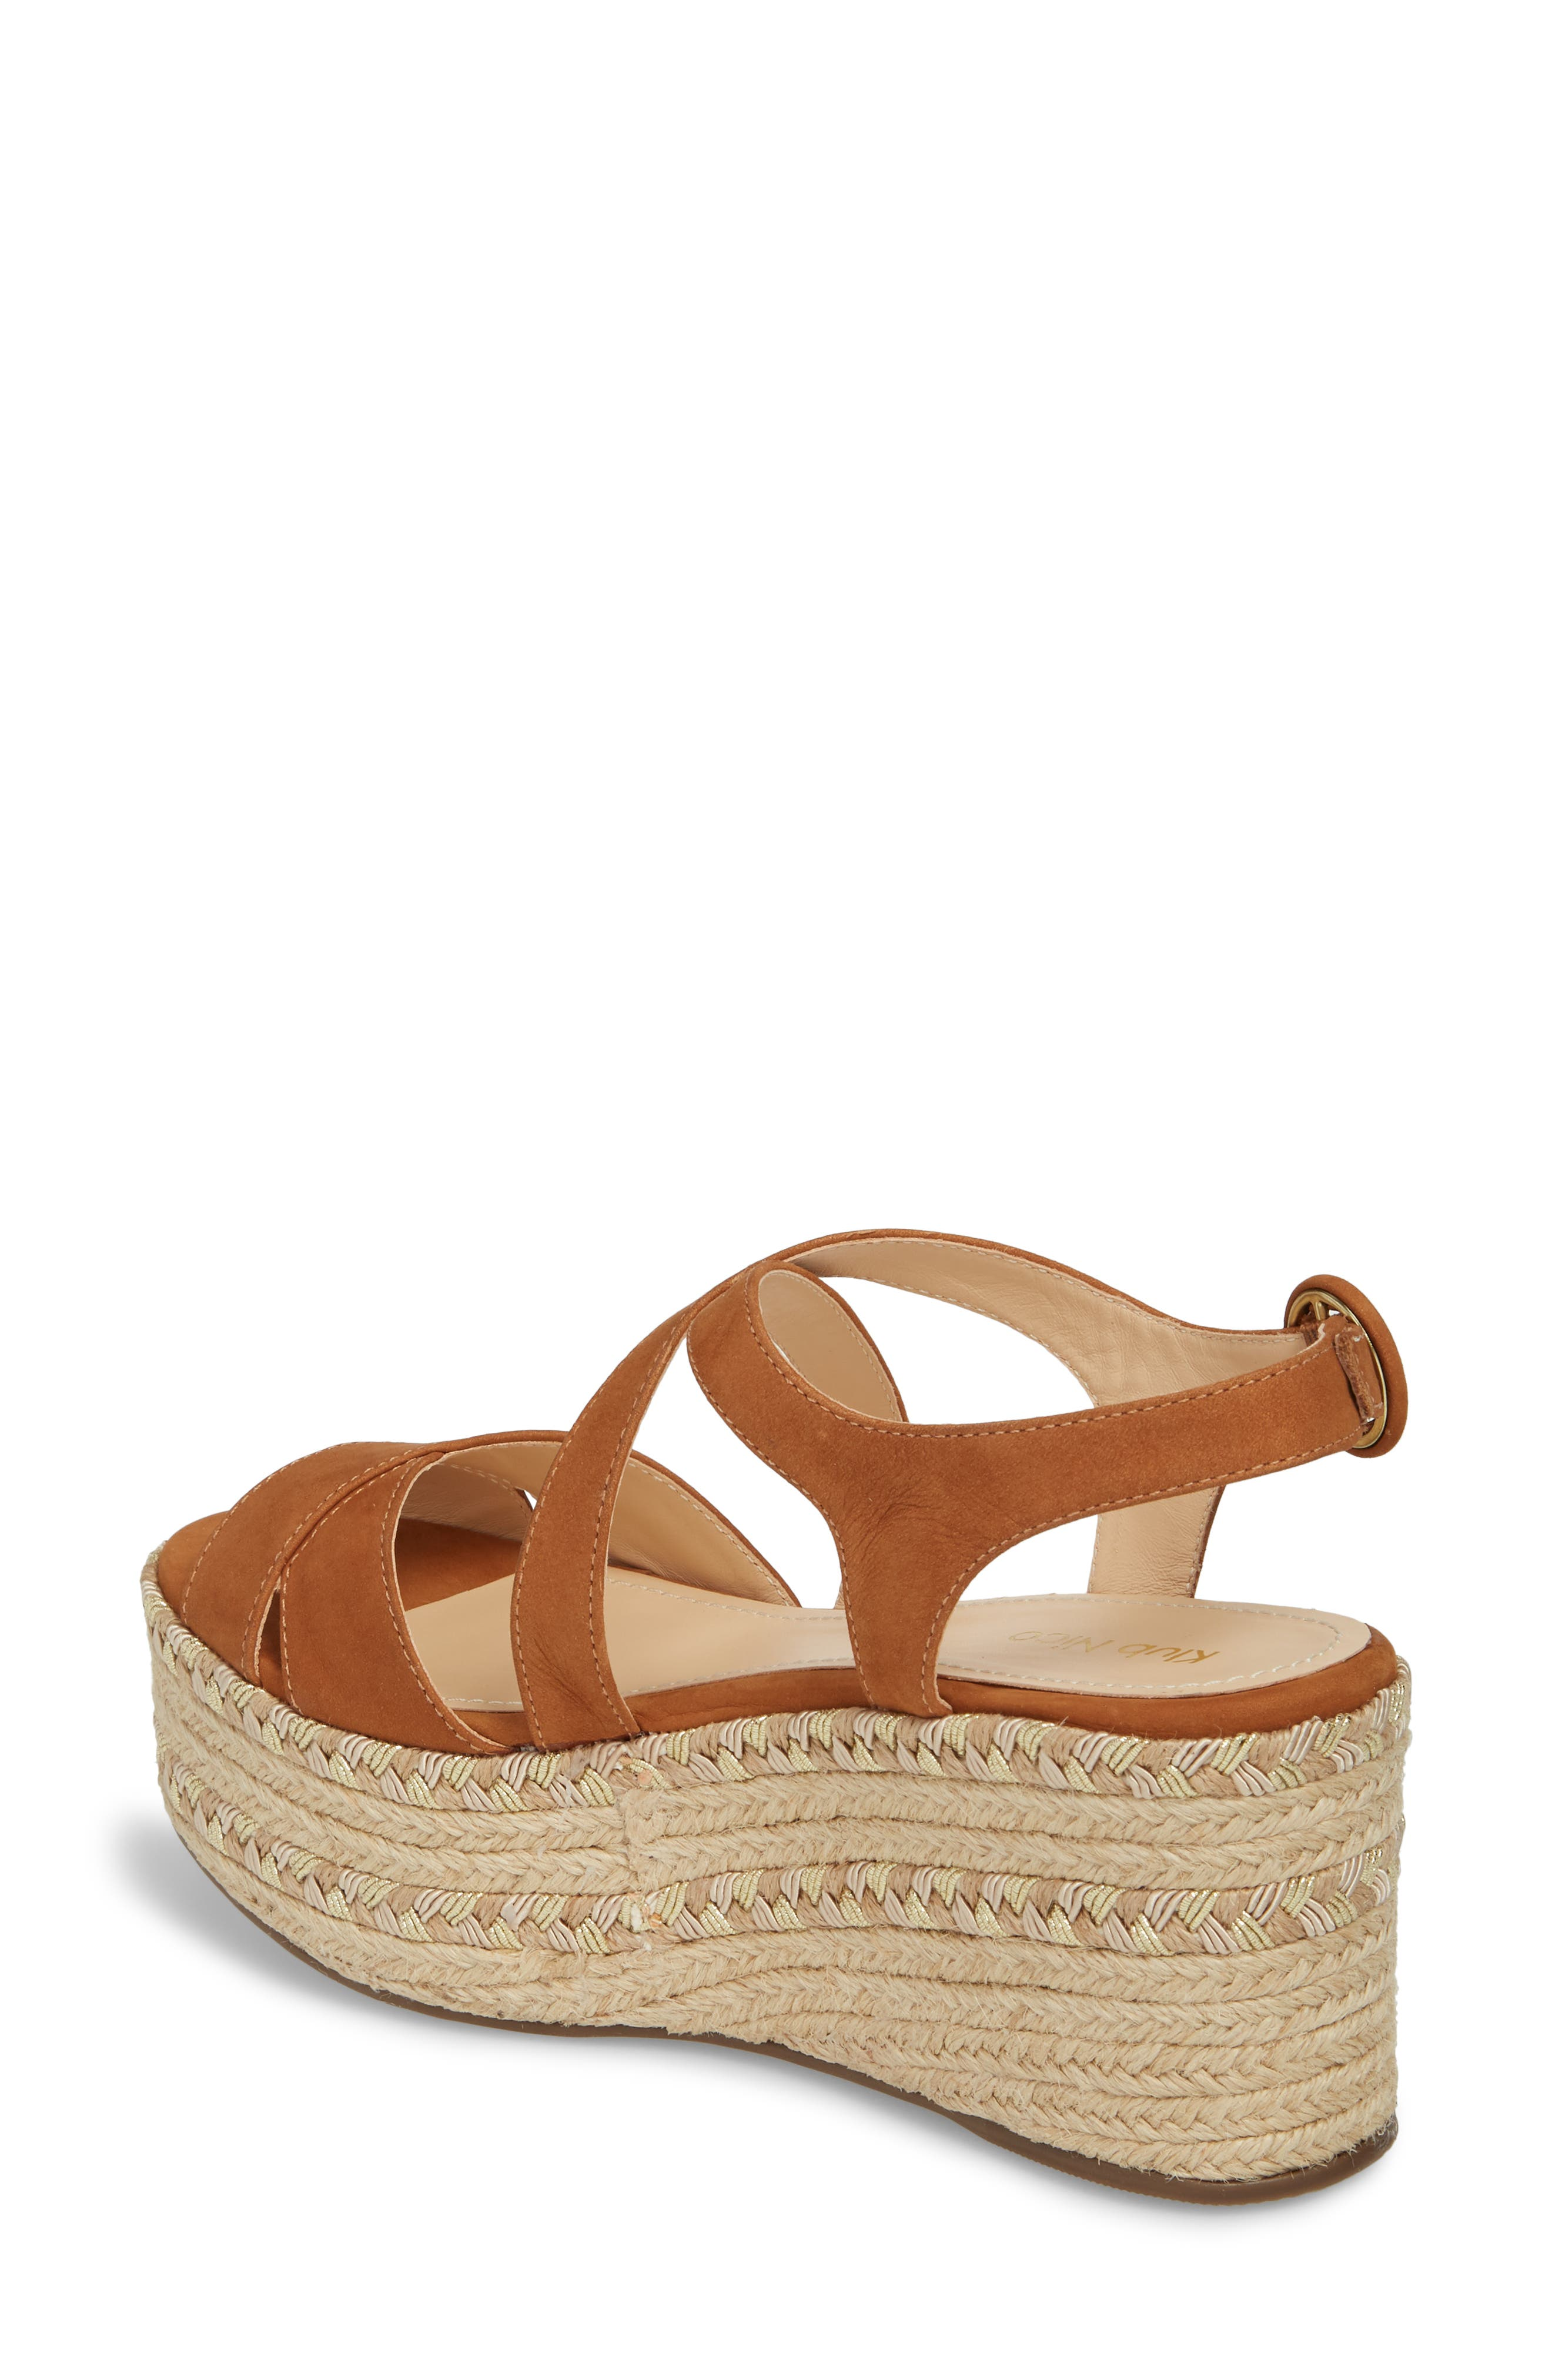 KLUB NICO,                             Vikki Espadrille Platform Sandal,                             Alternate thumbnail 2, color,                             TAN LEATHER